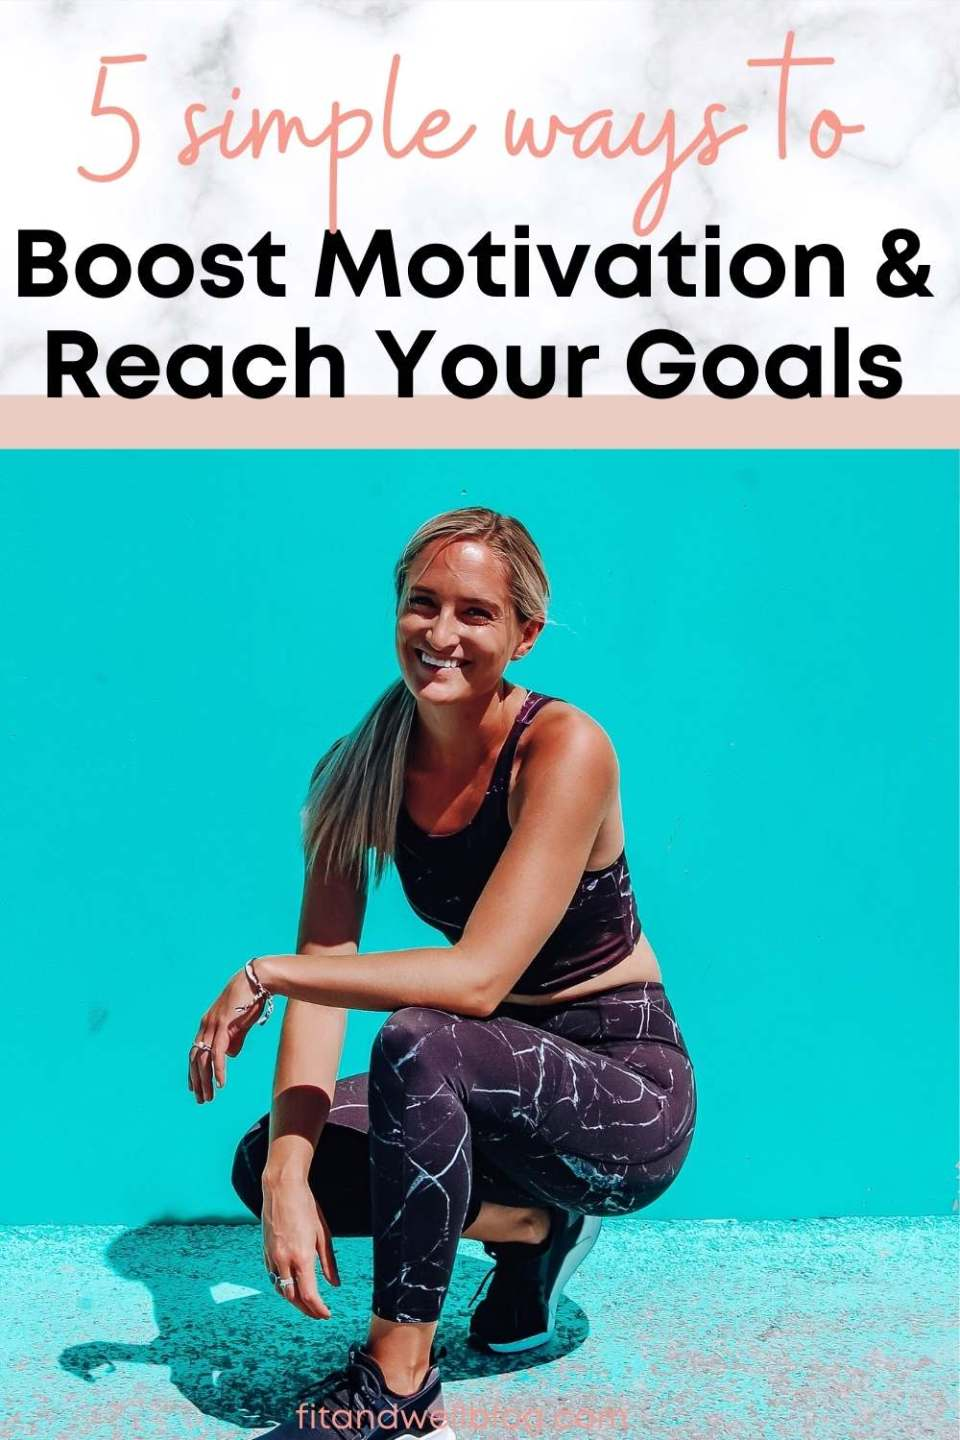 Simple ways to boost motivation and reach your goals- fitandwellblog.com